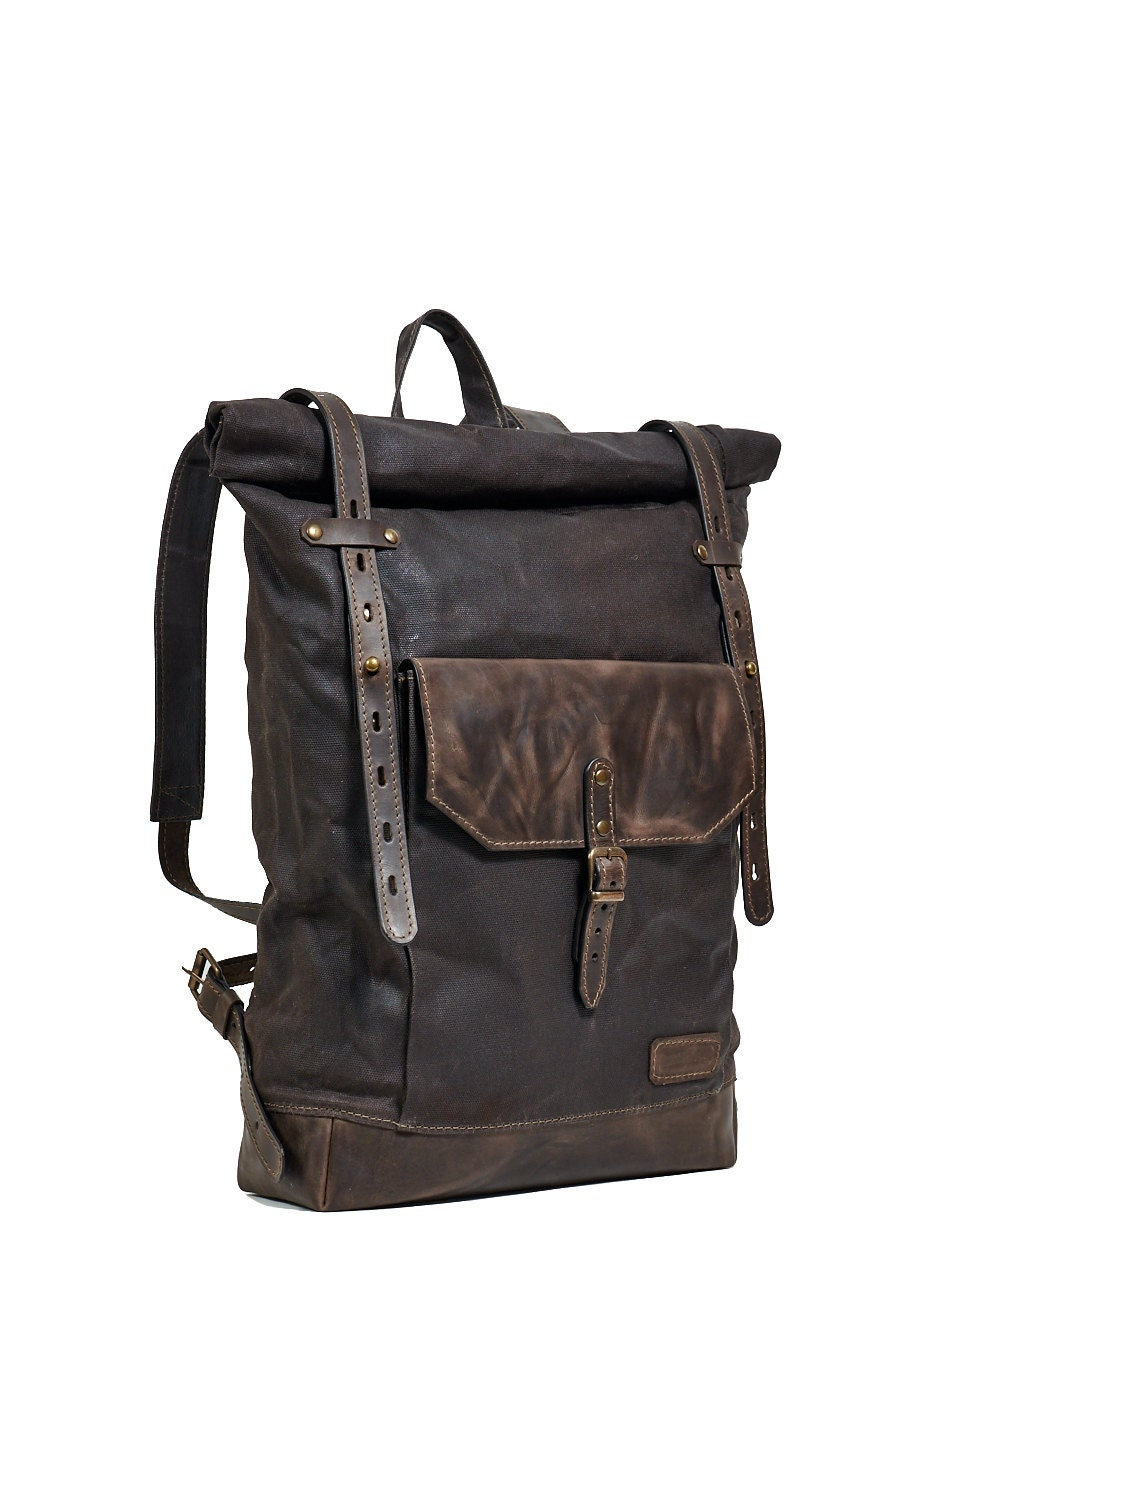 Dark brown waxed canvas backpack. Leather canvas backpack.